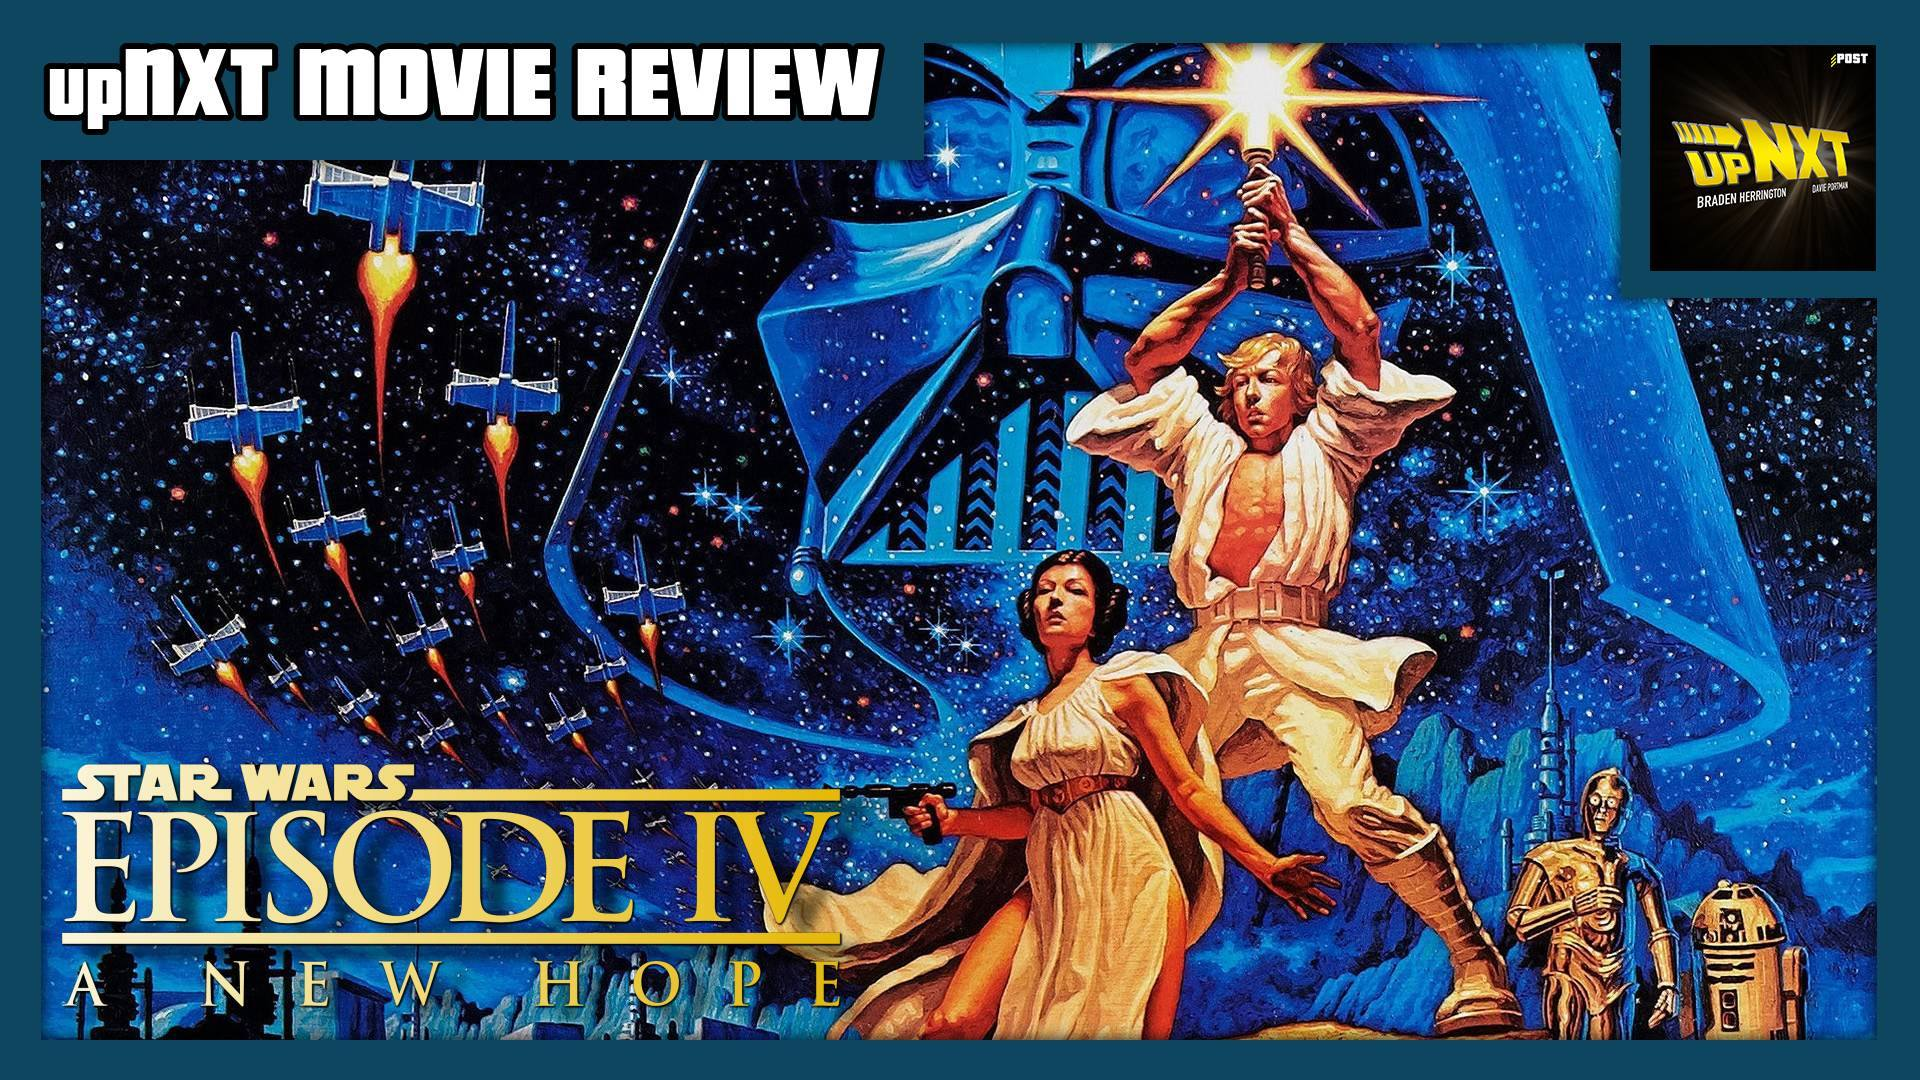 Upnxt Movie Review Star Wars Episode Iv A New Hope 1977